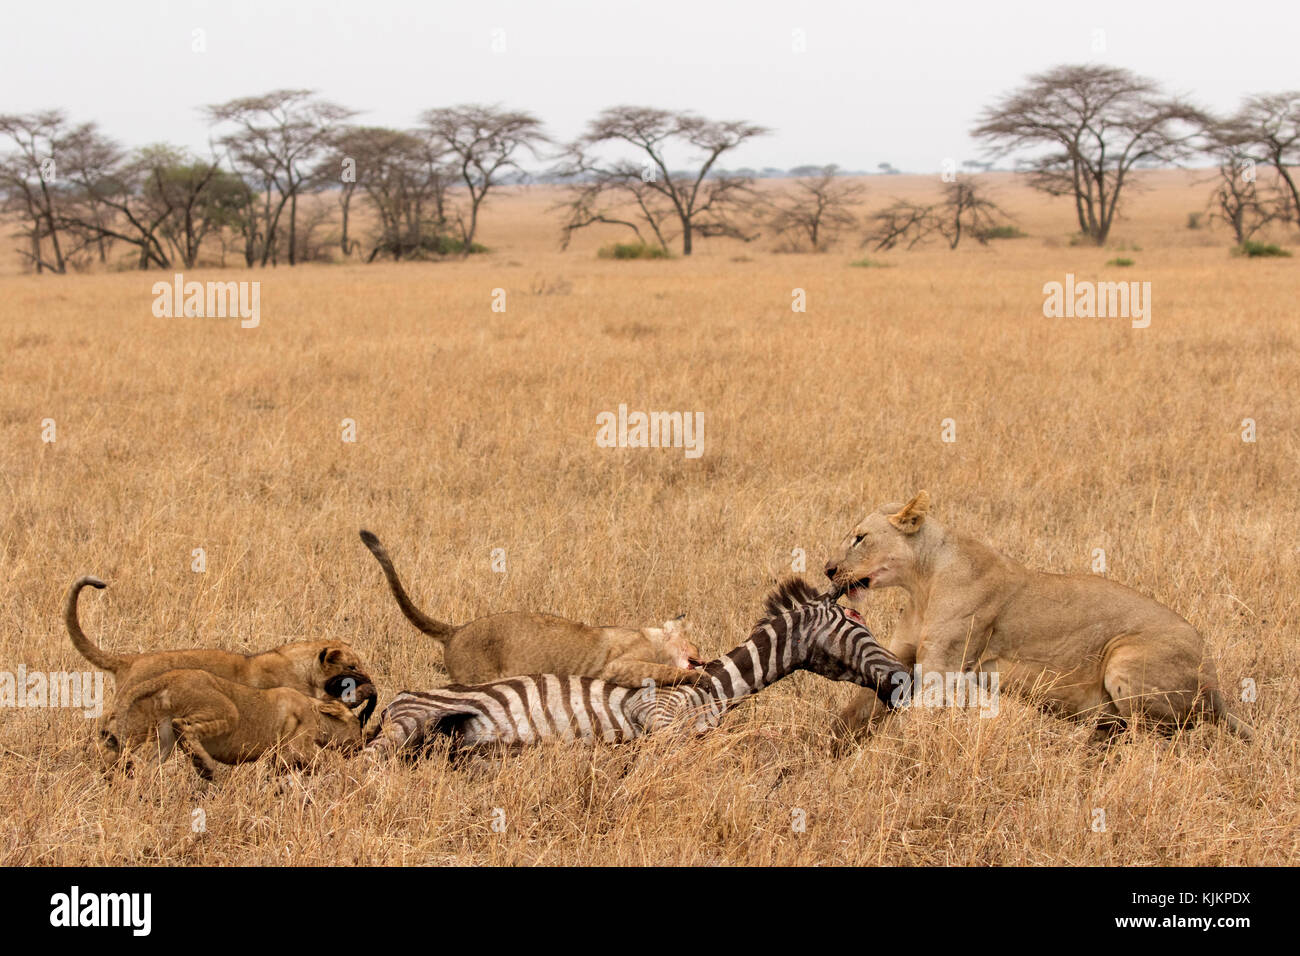 Serengeti National Park. Lion (Panthera leo) feeding on kill.  Tanzania. - Stock Image